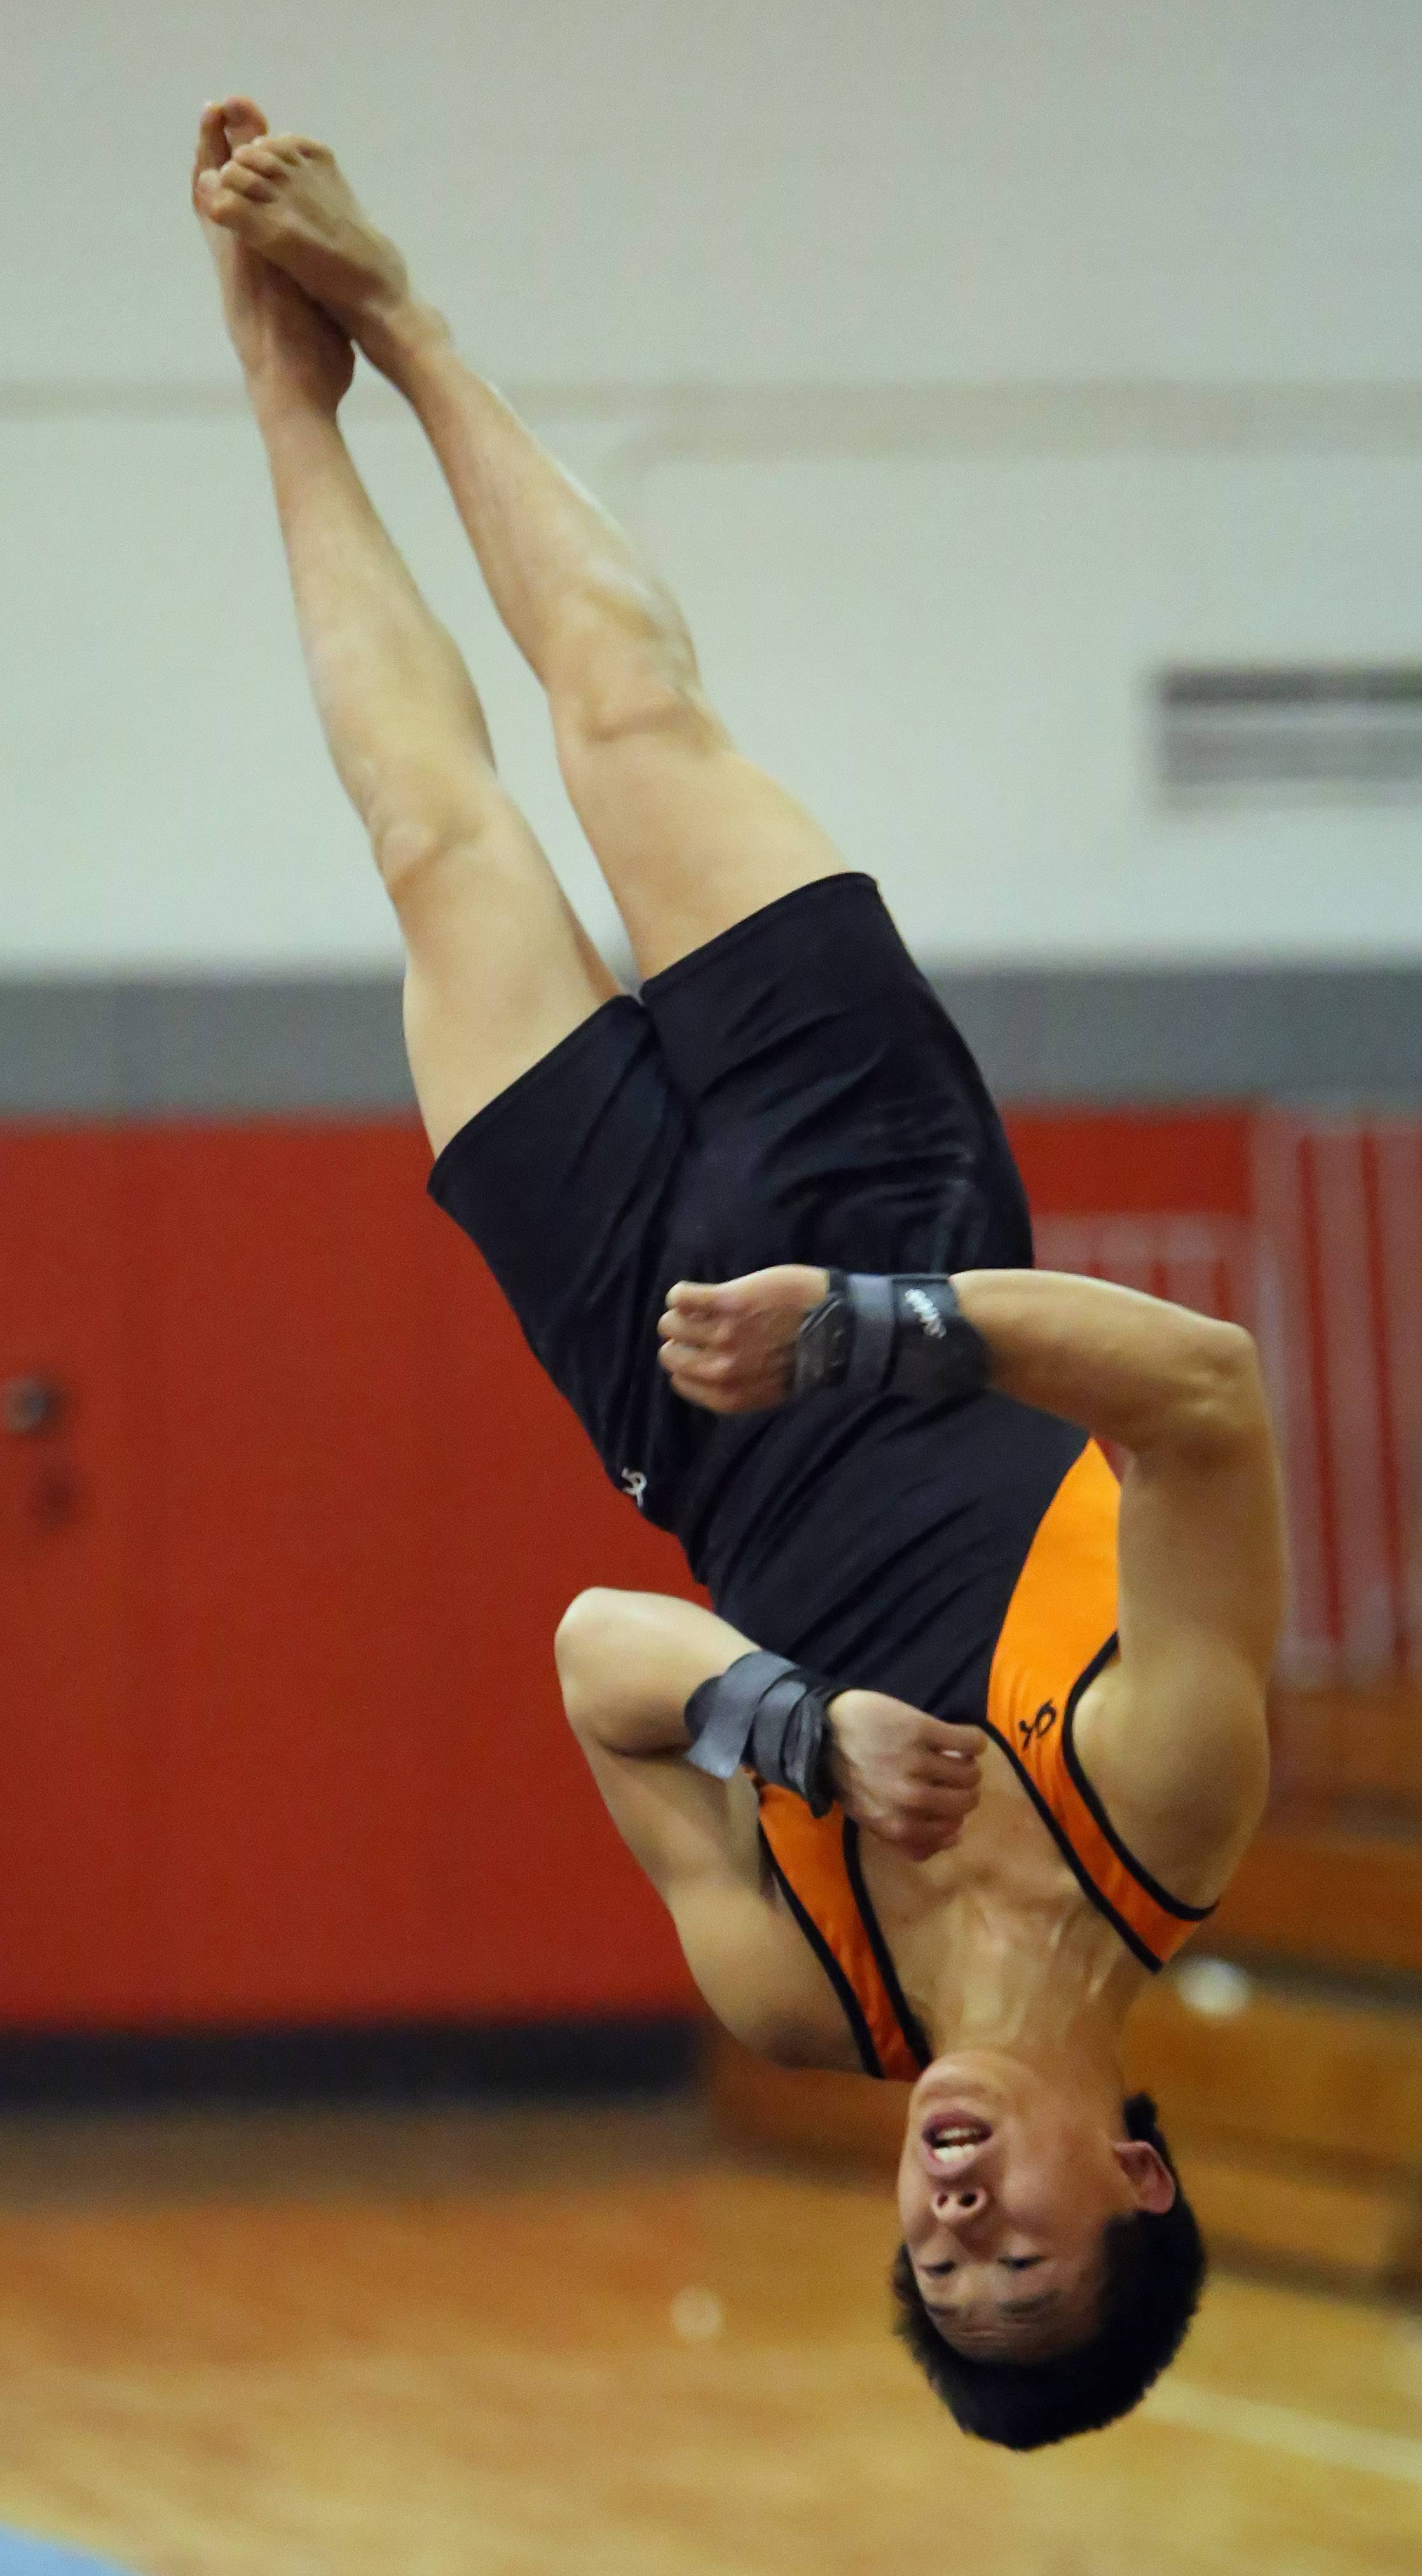 Libertyville's Alex Pong competes on the floor exercise during boys gymnastics action Wednesday night at Mundelein.